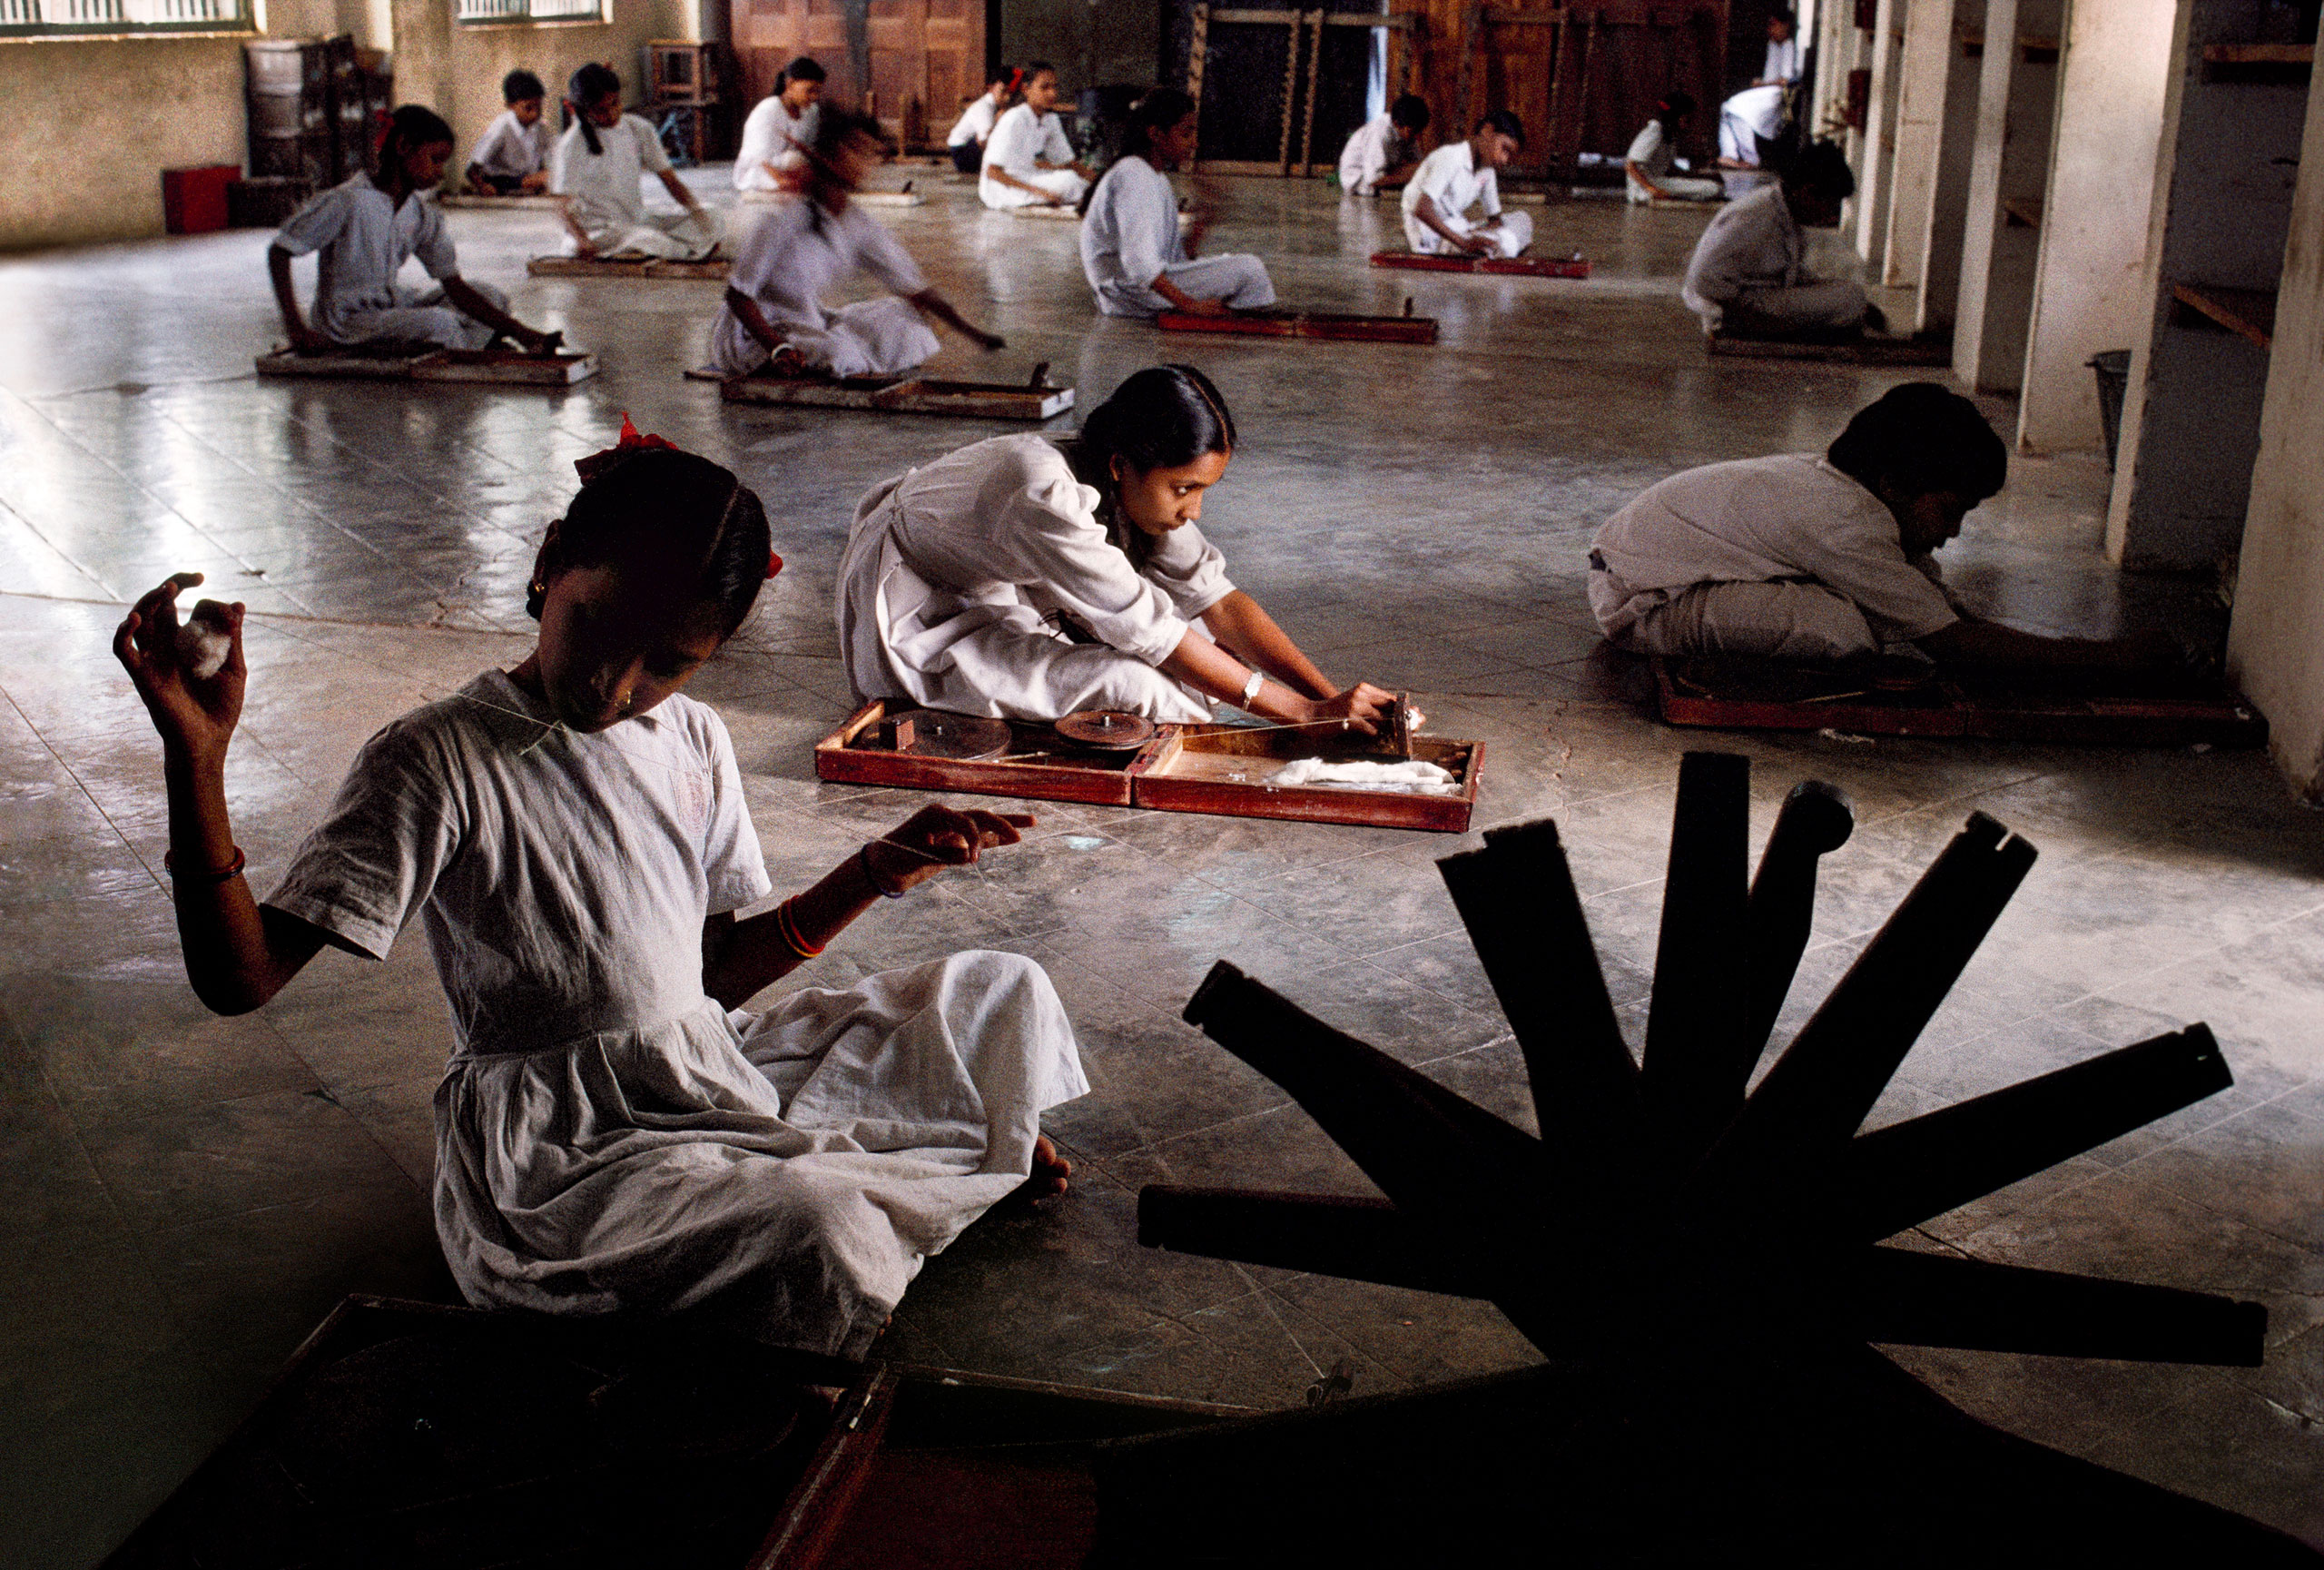 Students of Gujarat Vidyapith university, founded in 1920 by Mahatma Gandhi, weave Khadi cloth.                               Ahmedabad, Gujarat, 1996